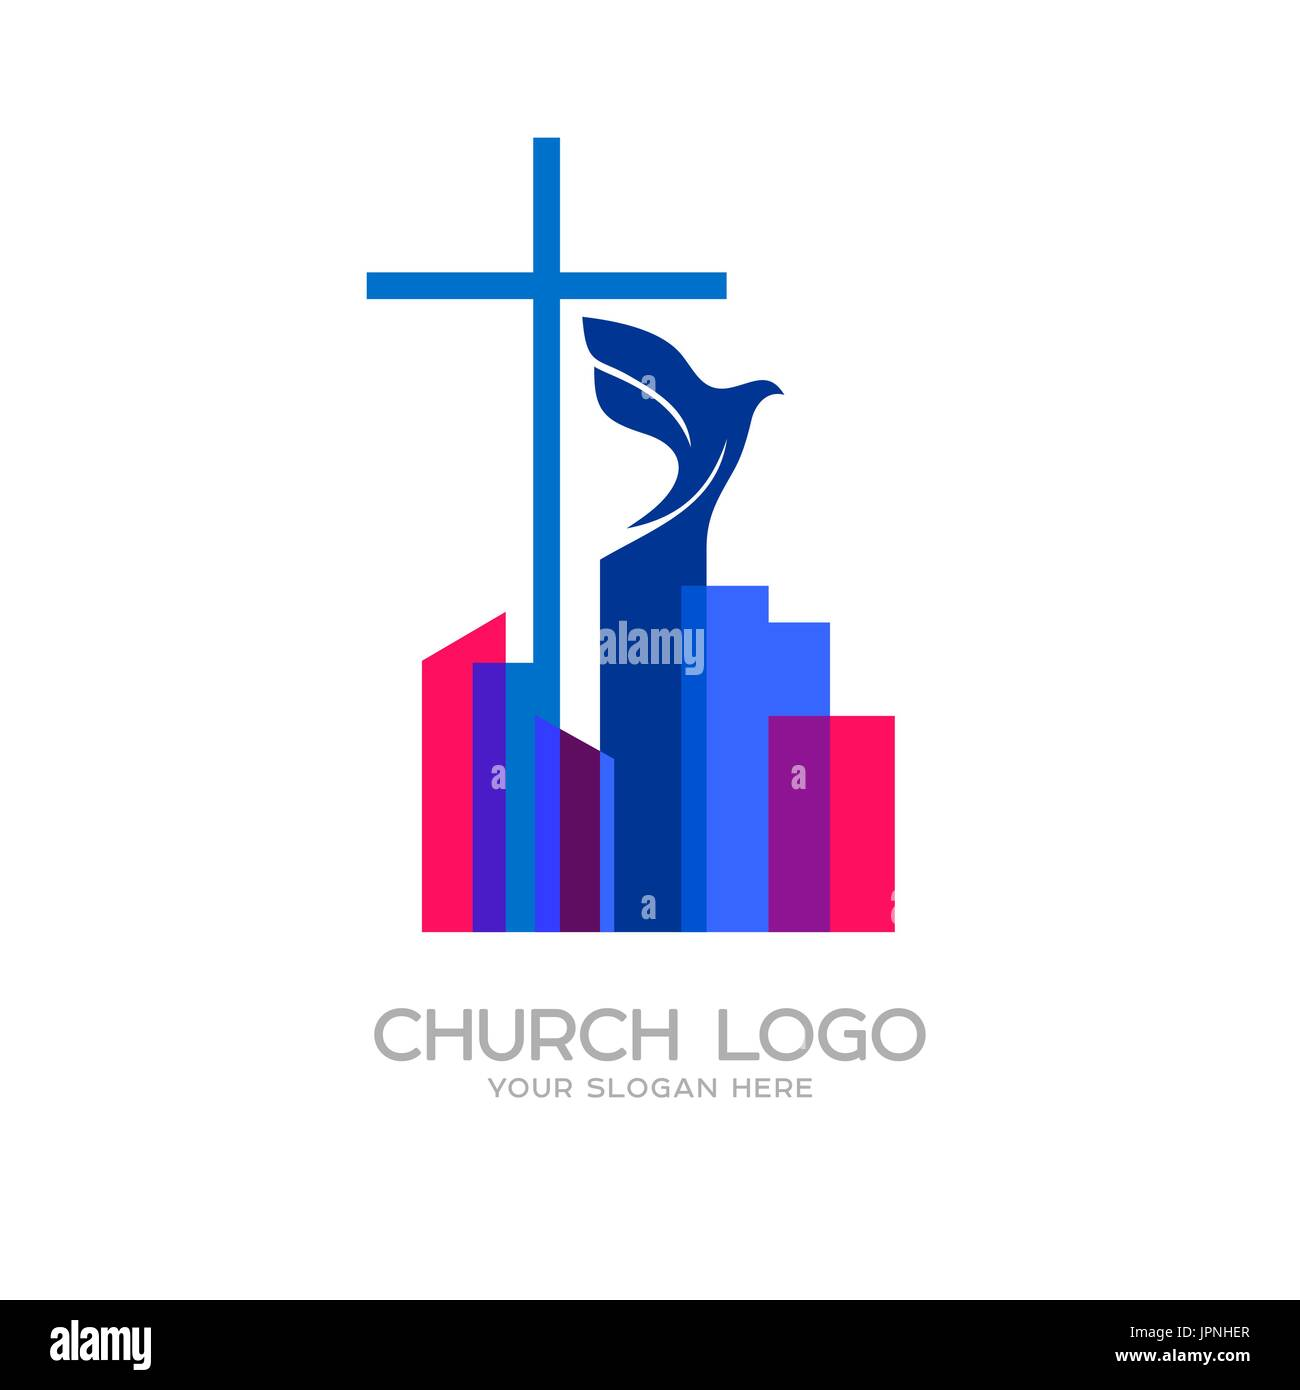 Church logo christian symbols the cross of jesus and the dove over church logo christian symbols the cross of jesus and the dove over the city altavistaventures Images